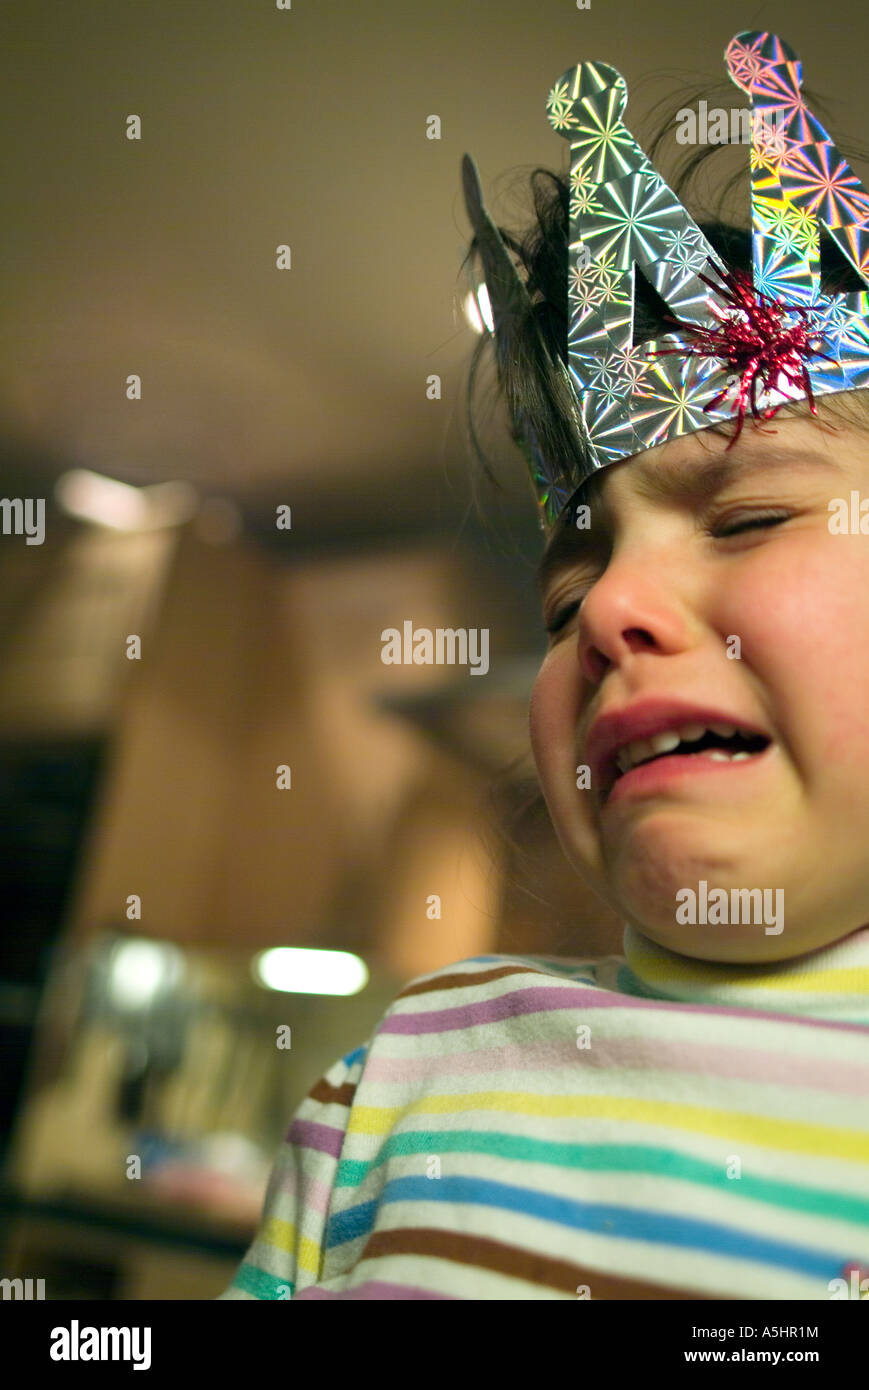 little girl wearing festive crown crying - Stock Image